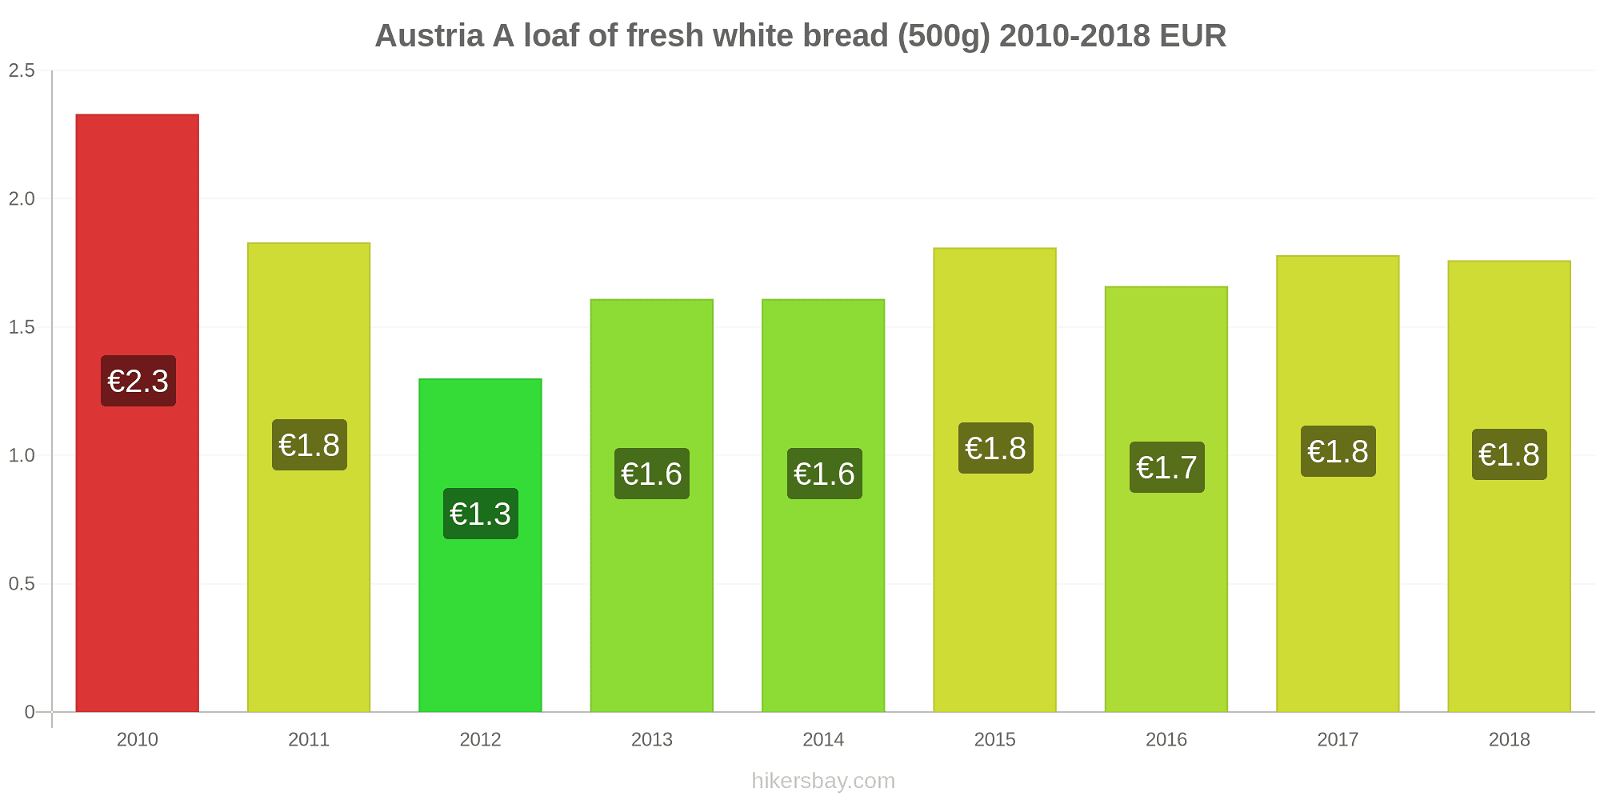 Austria price changes A loaf of fresh white bread (500g) hikersbay.com